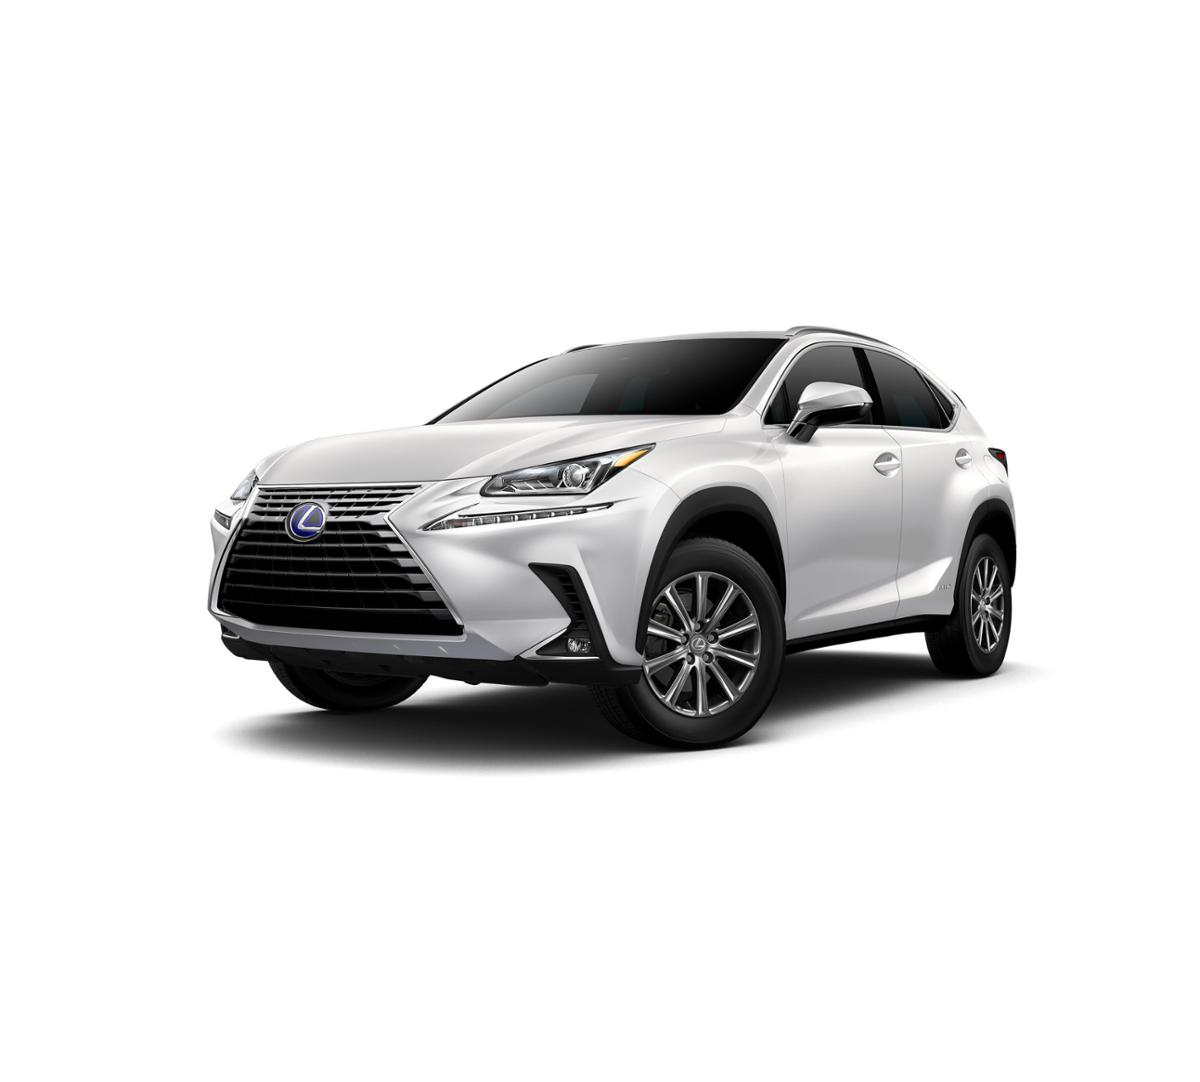 2019 Lexus NX 300h Vehicle Photo in Santa Barbara, CA 93105